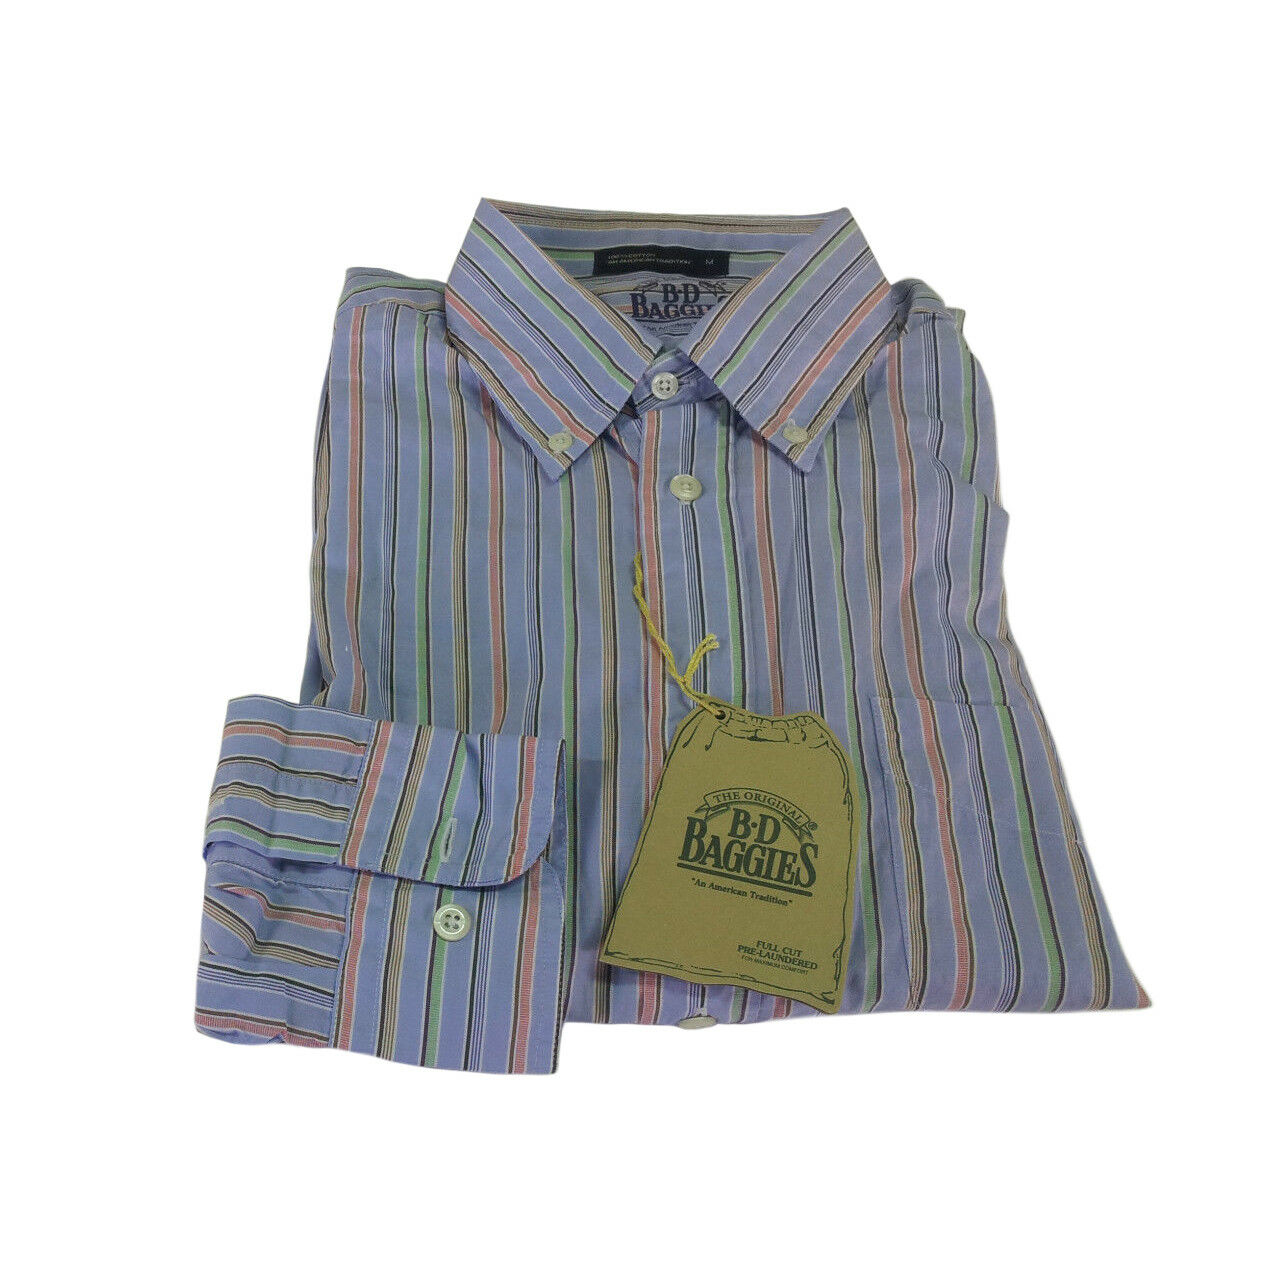 B.D BAGGIES men's shirts striped 100% cotton fit comfortable Size M